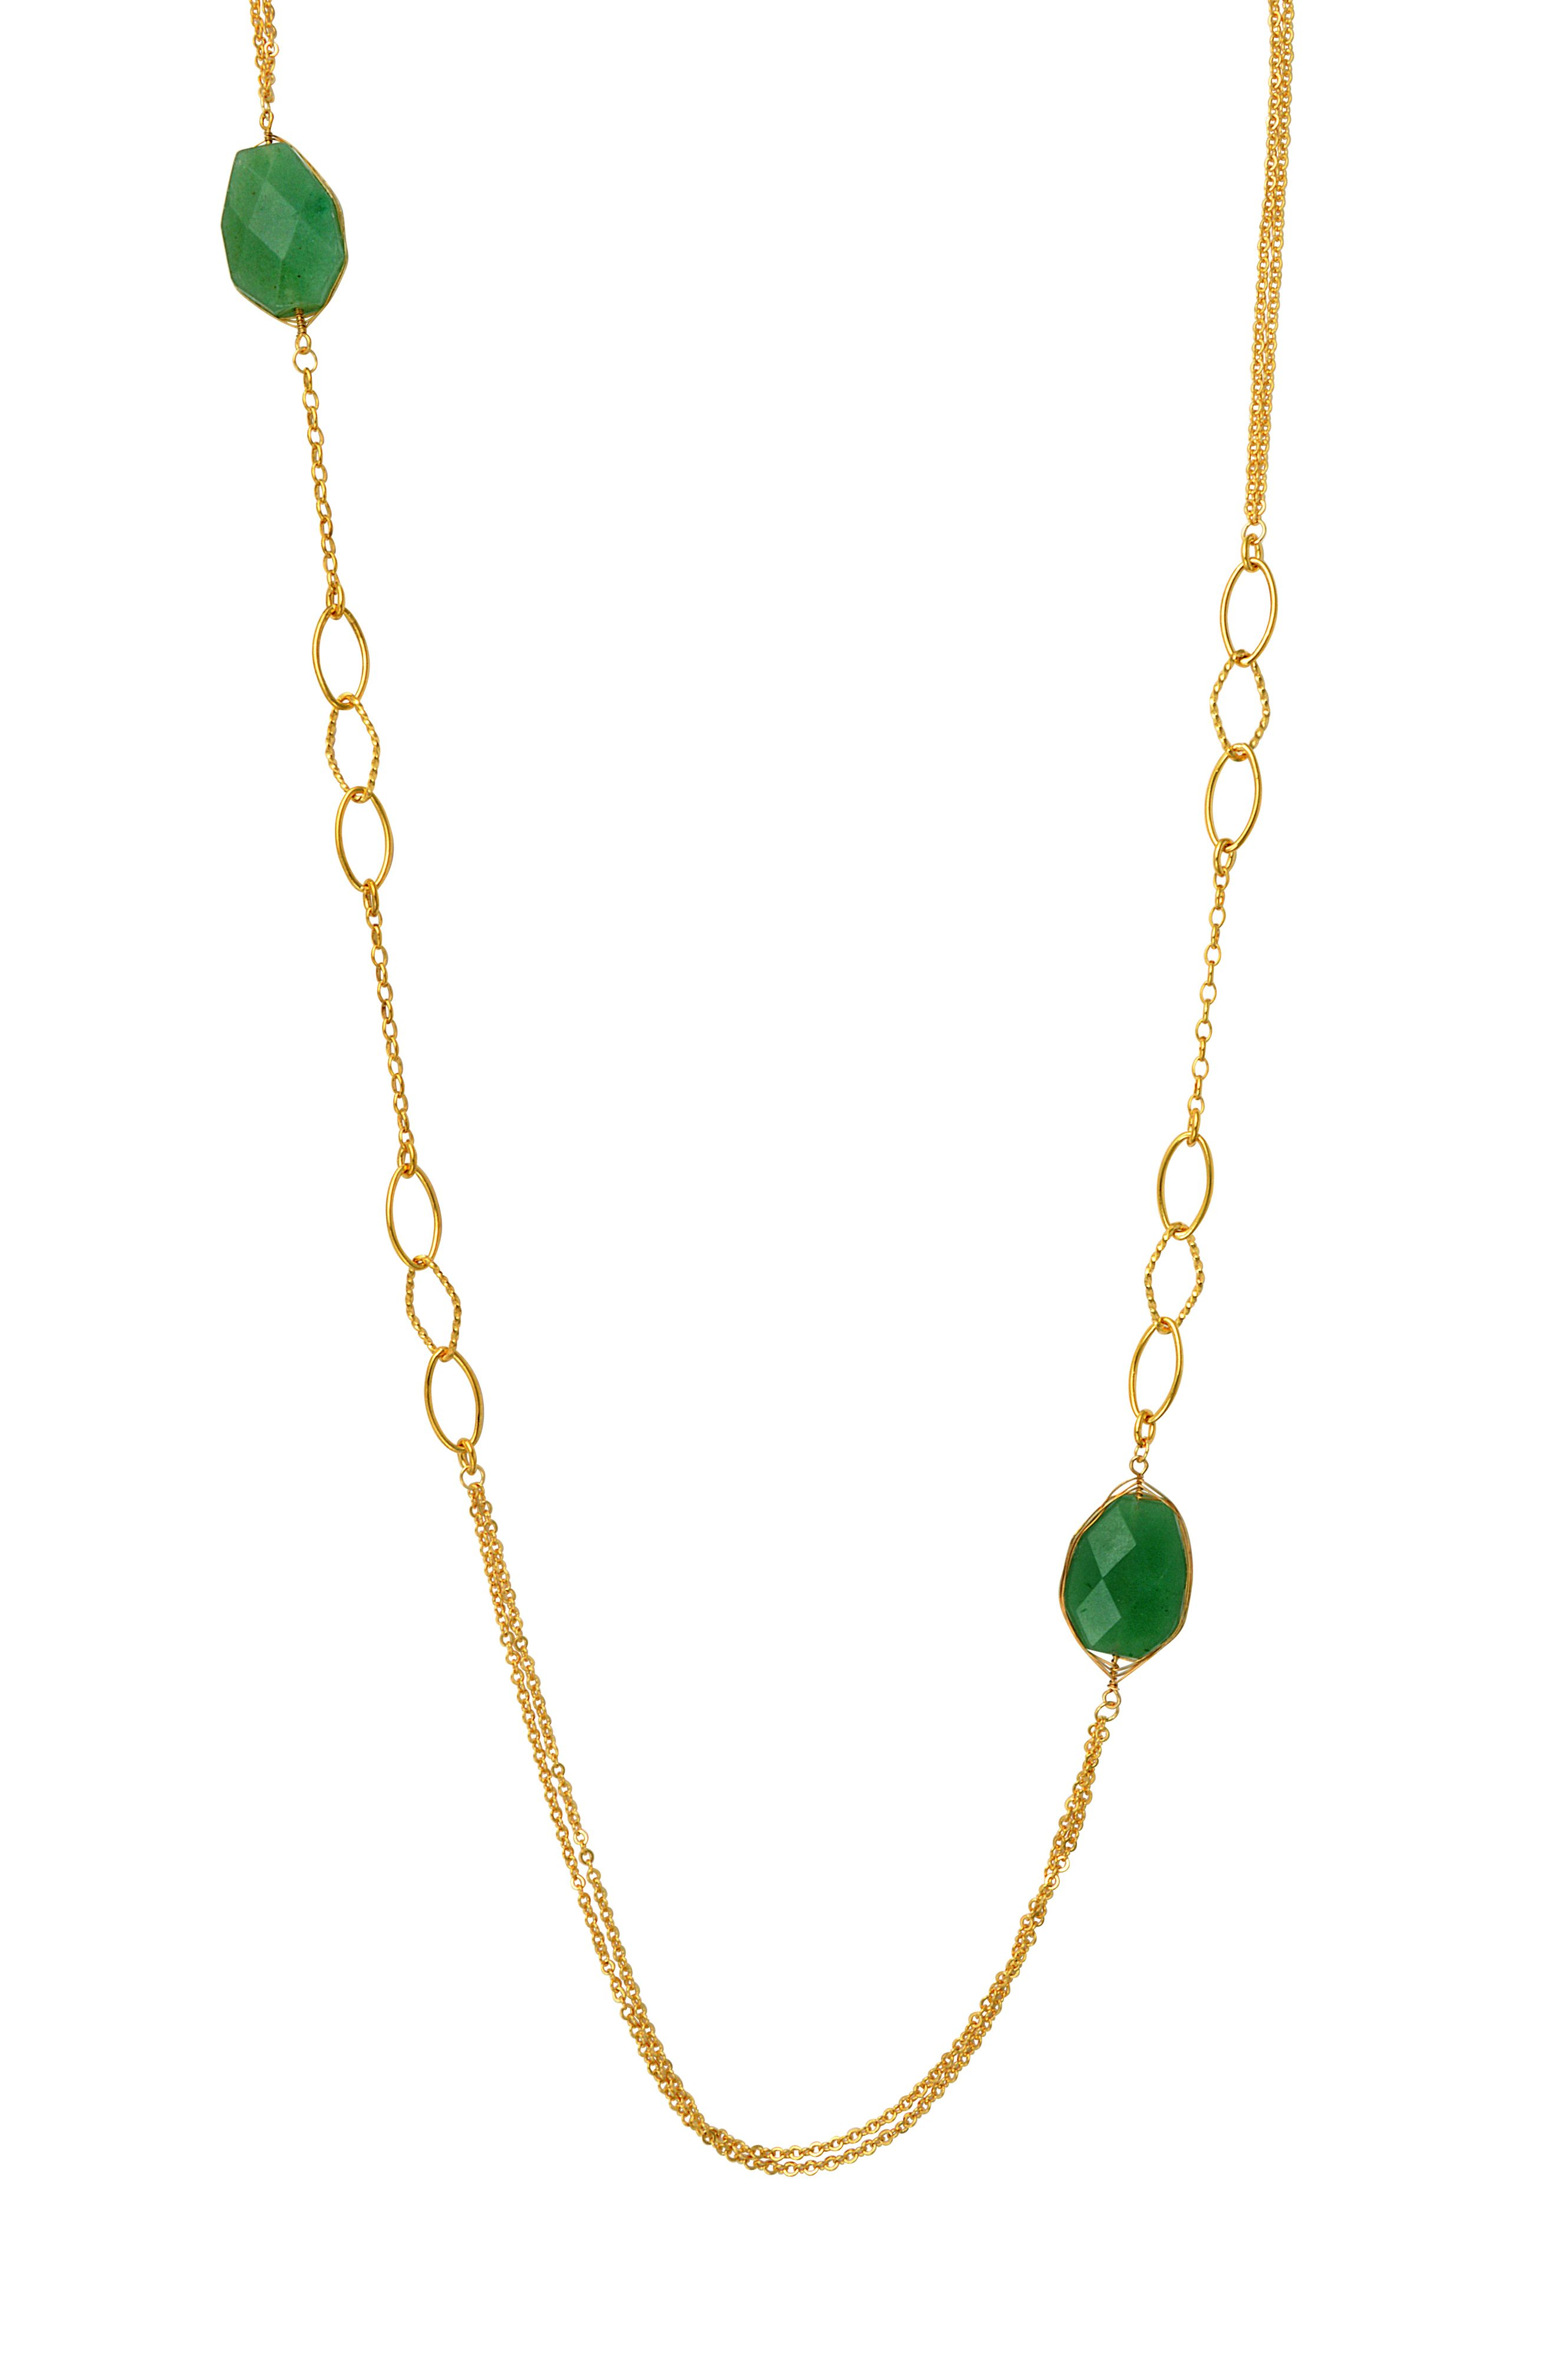 Malay jade long necklace